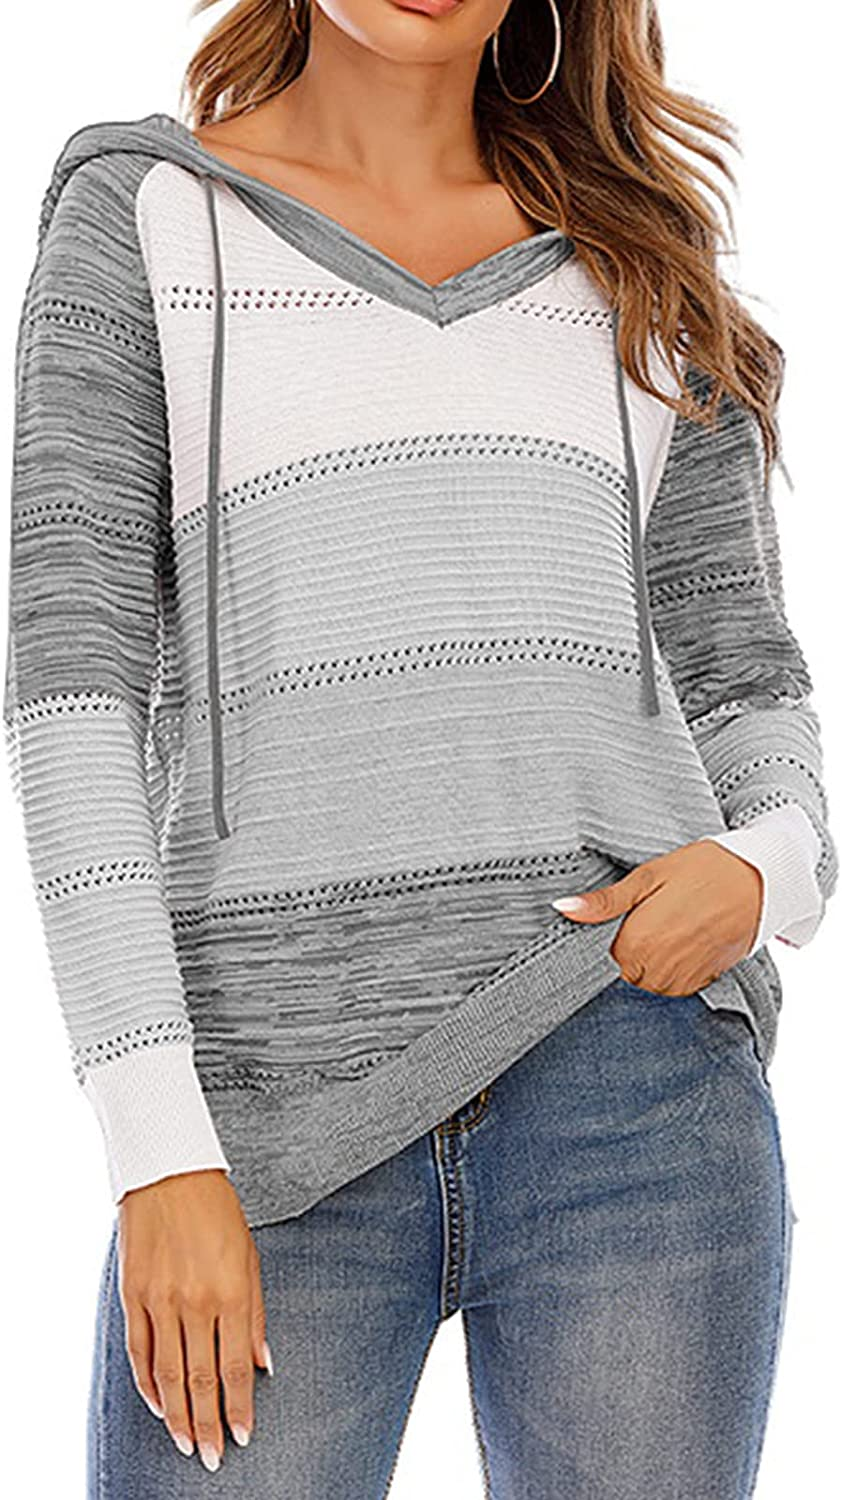 HIFUAR Women's Sweater Hooded V Neck Elasticity Striped Long Sleeve Loose Oversized Sexy Knit Pullover Jumper